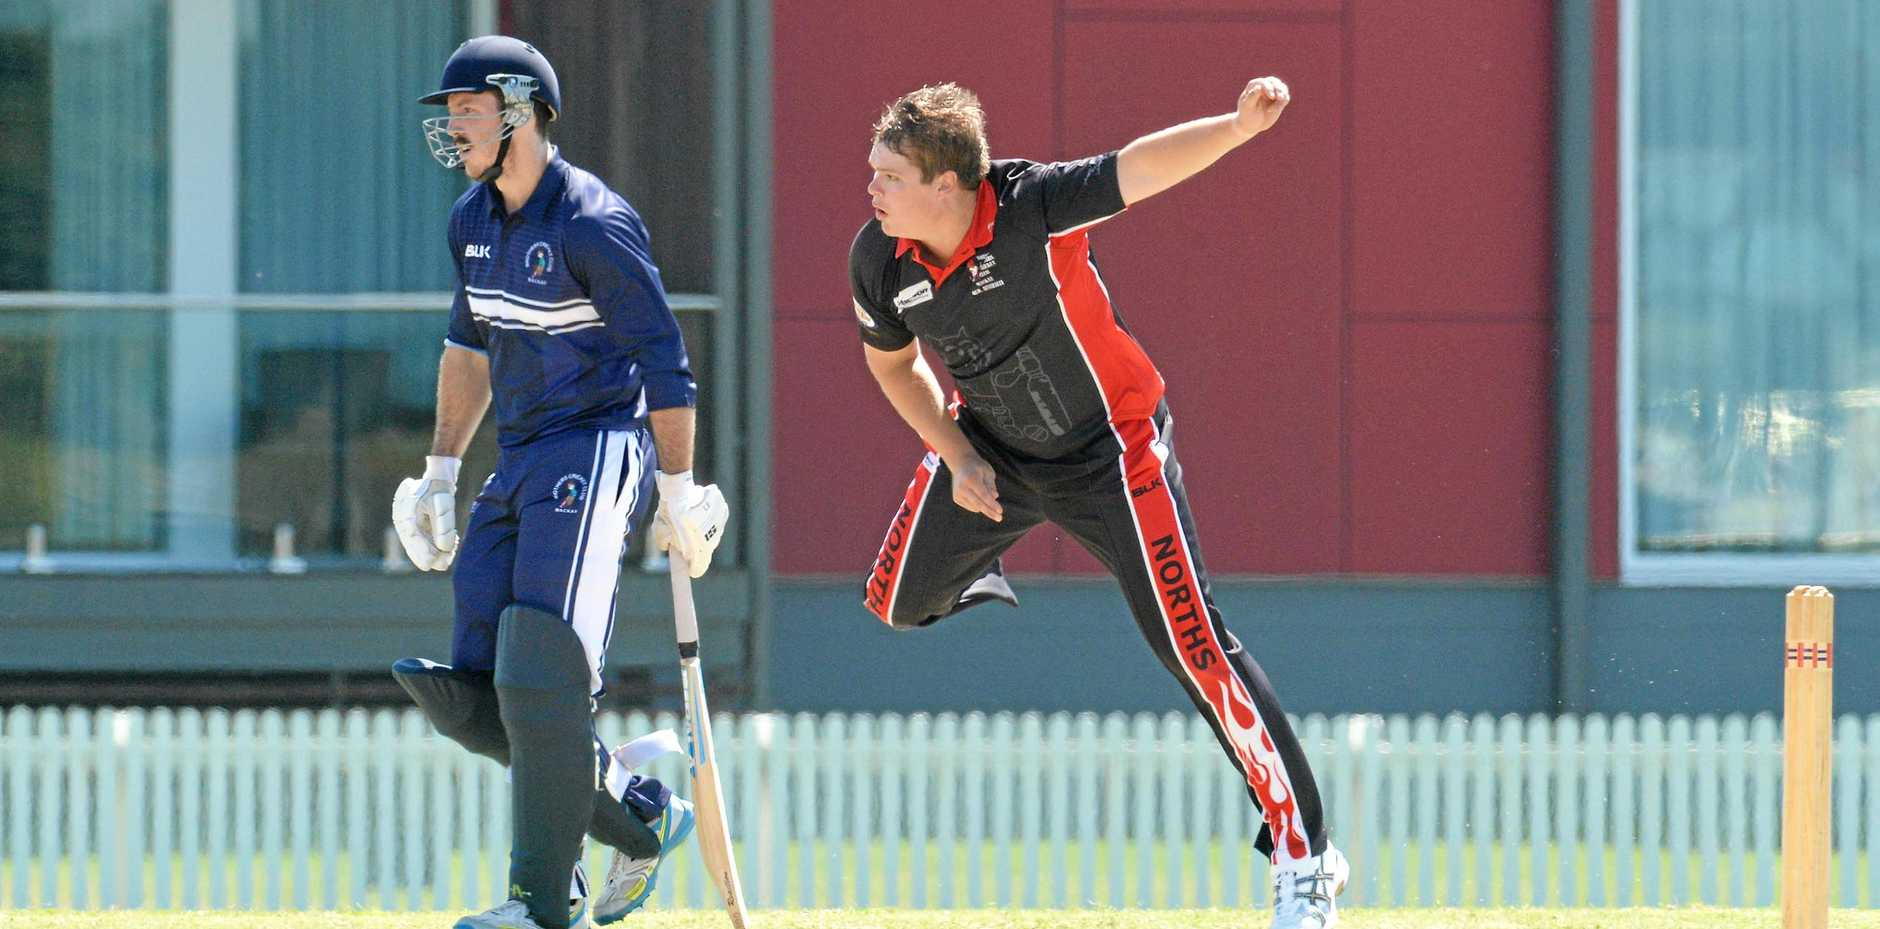 CONFIDENT: Norths Jason Butterworth (bowling) expects his side to bounce back in the DBCT Poole Cup today.